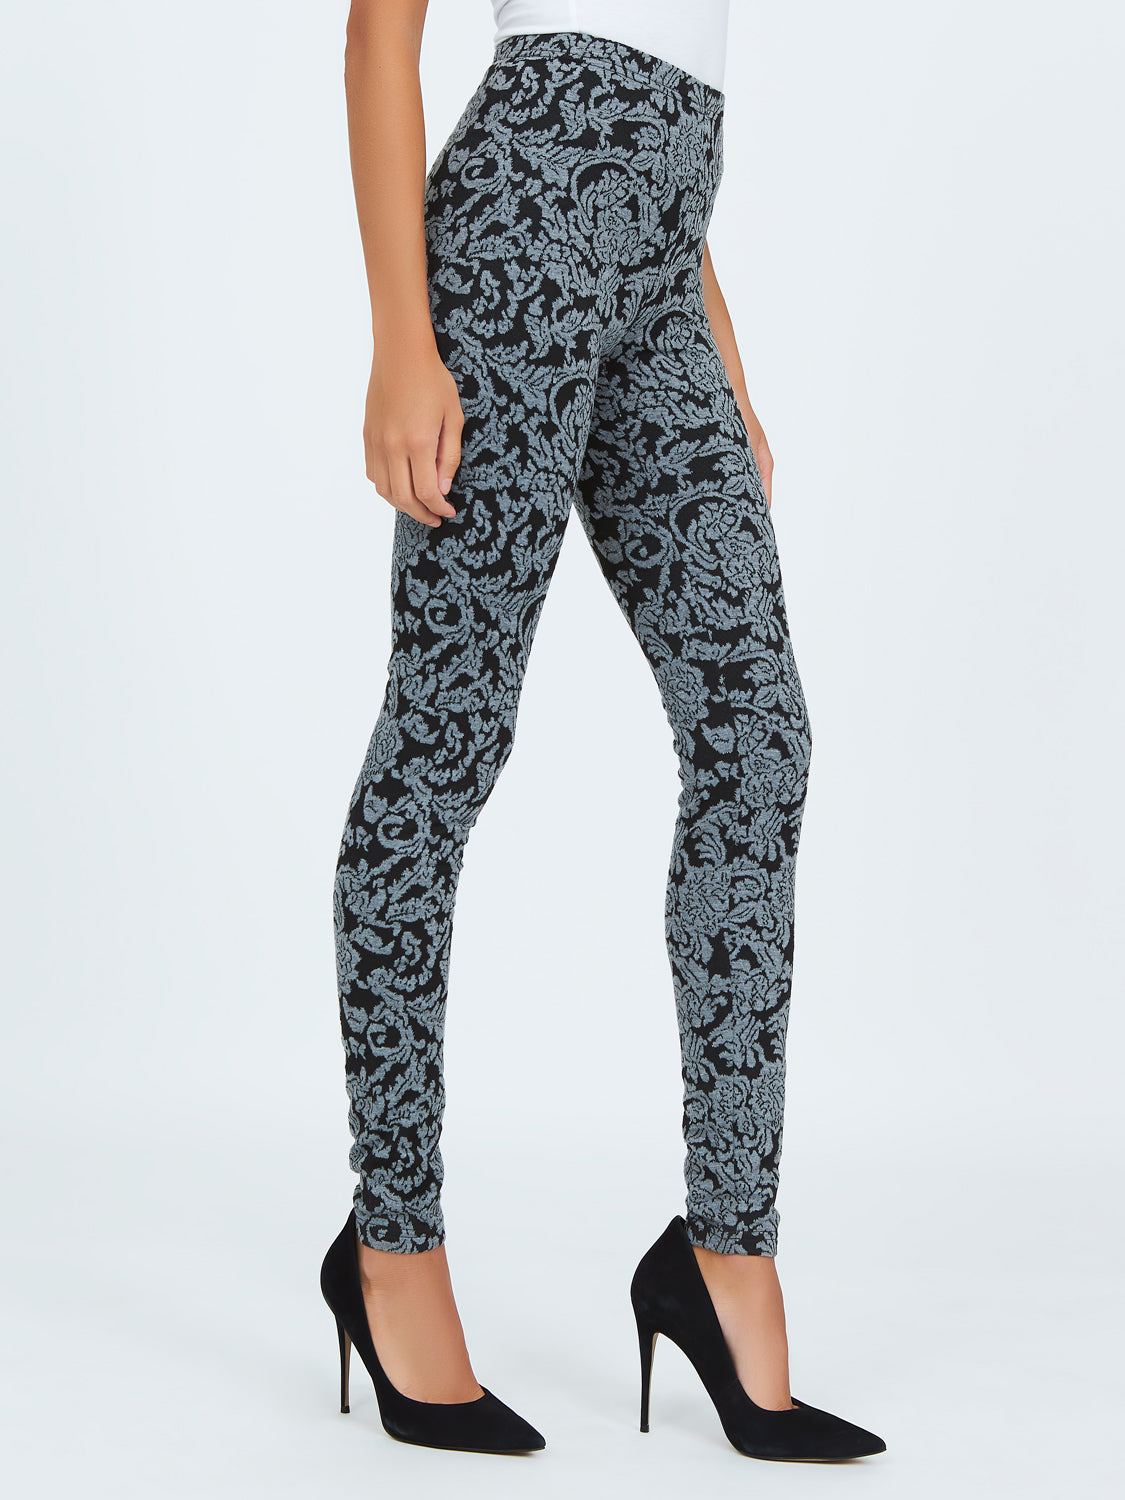 Jacquard Brocade Printed Leggings